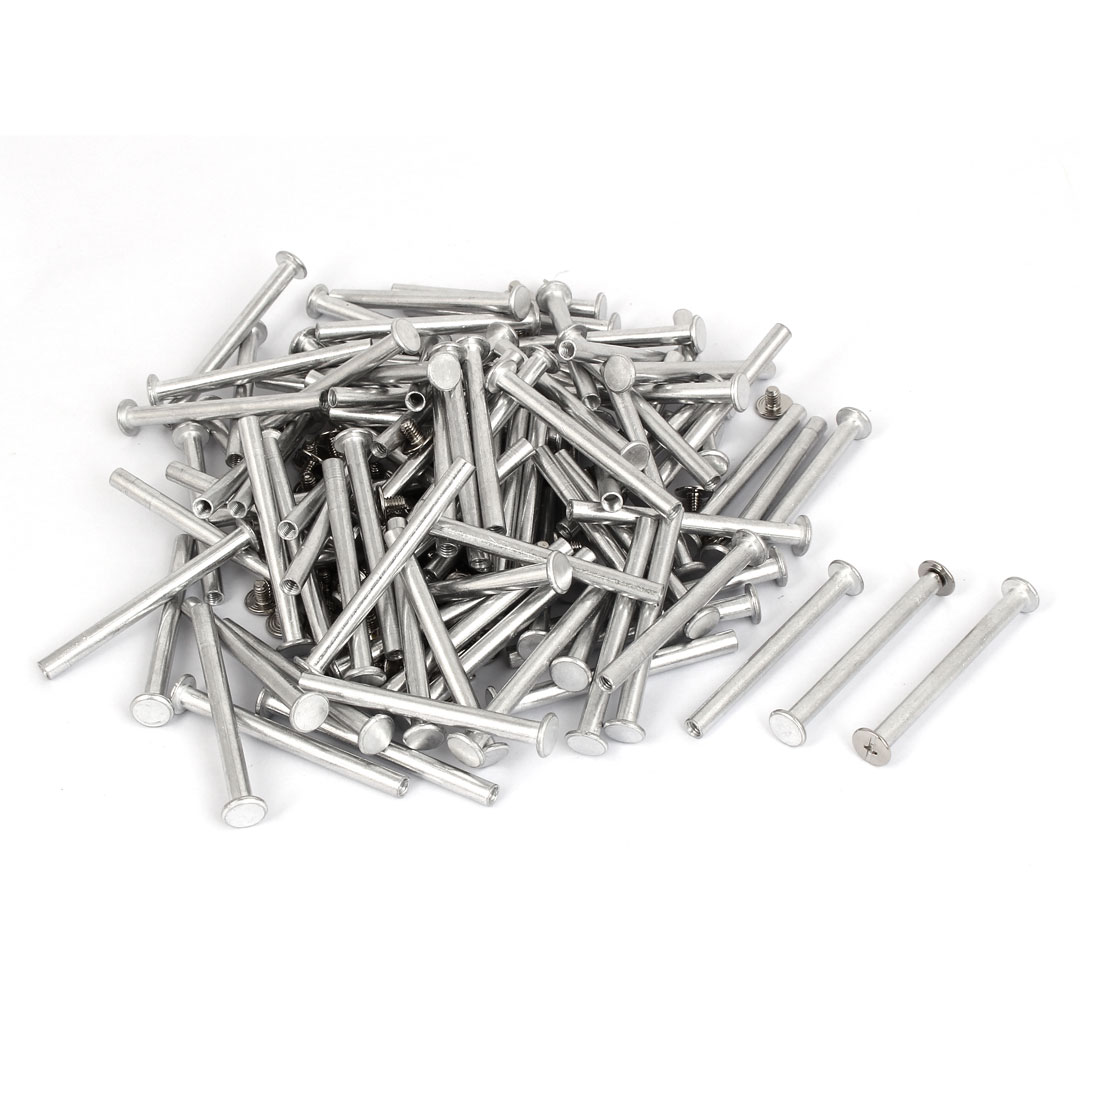 M5x55mm Aluminum Binding Screw Post 100pcs for Photo Albums Scrapbook